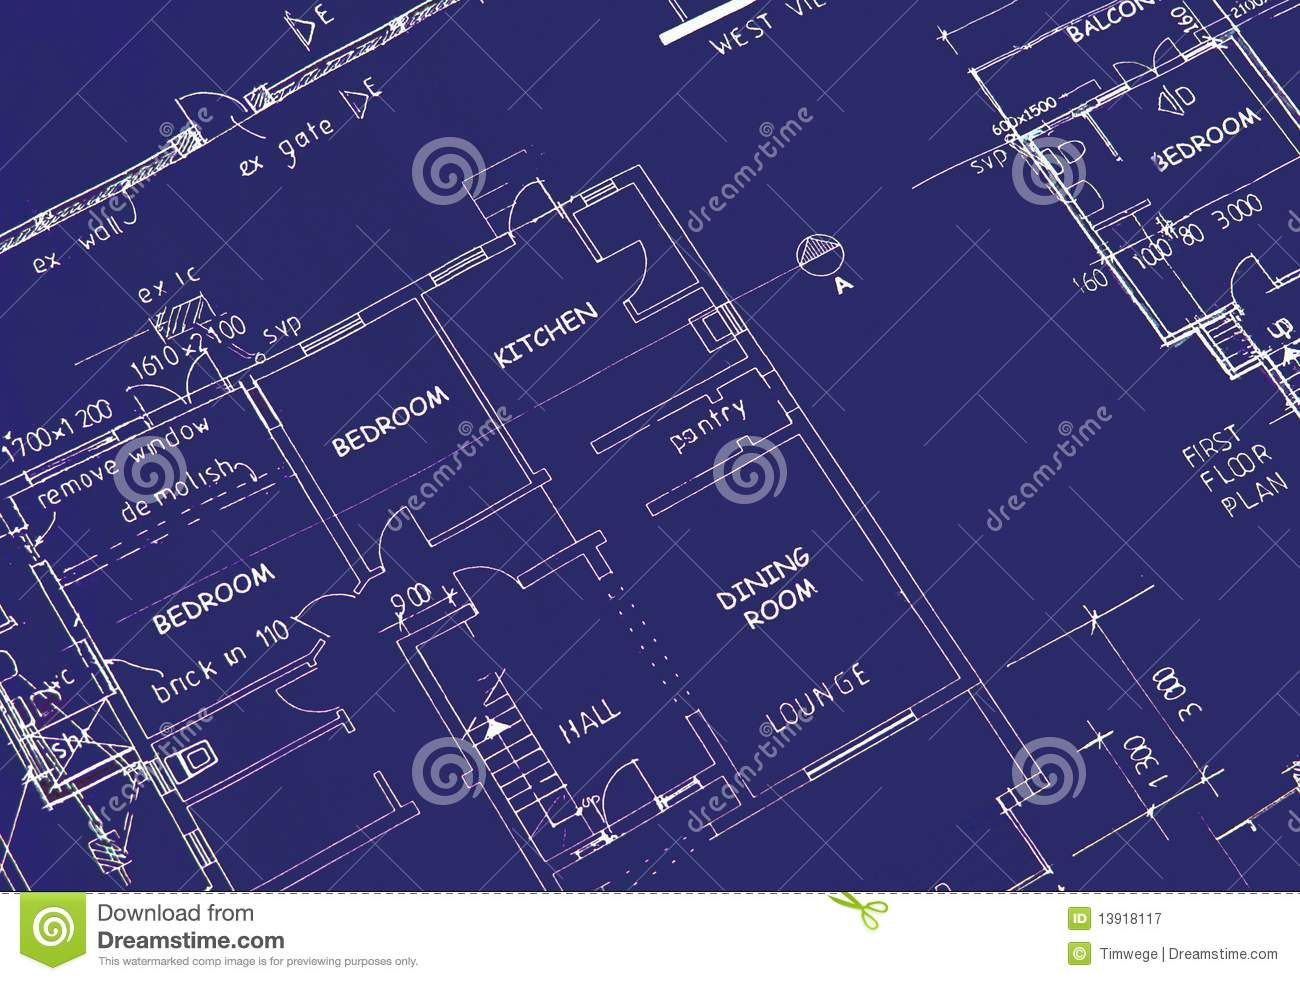 Blueprint of building plans stock image image of dining for How to build a blueprint